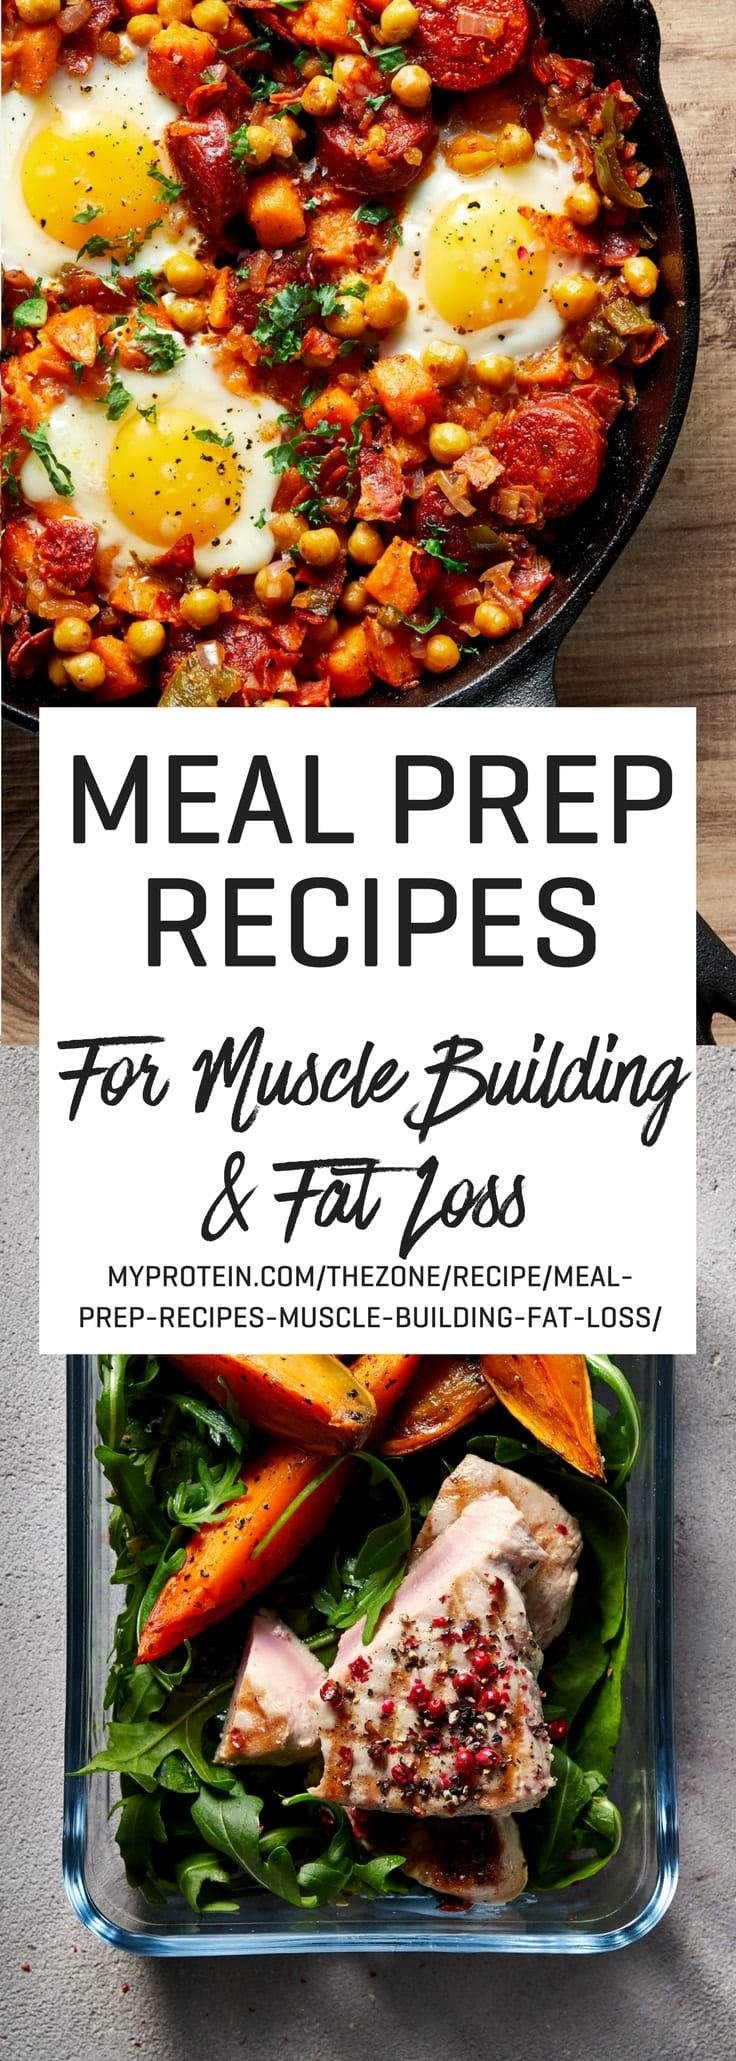 22 Meal Prep Recipes For Muscle Building & Fat Loss images